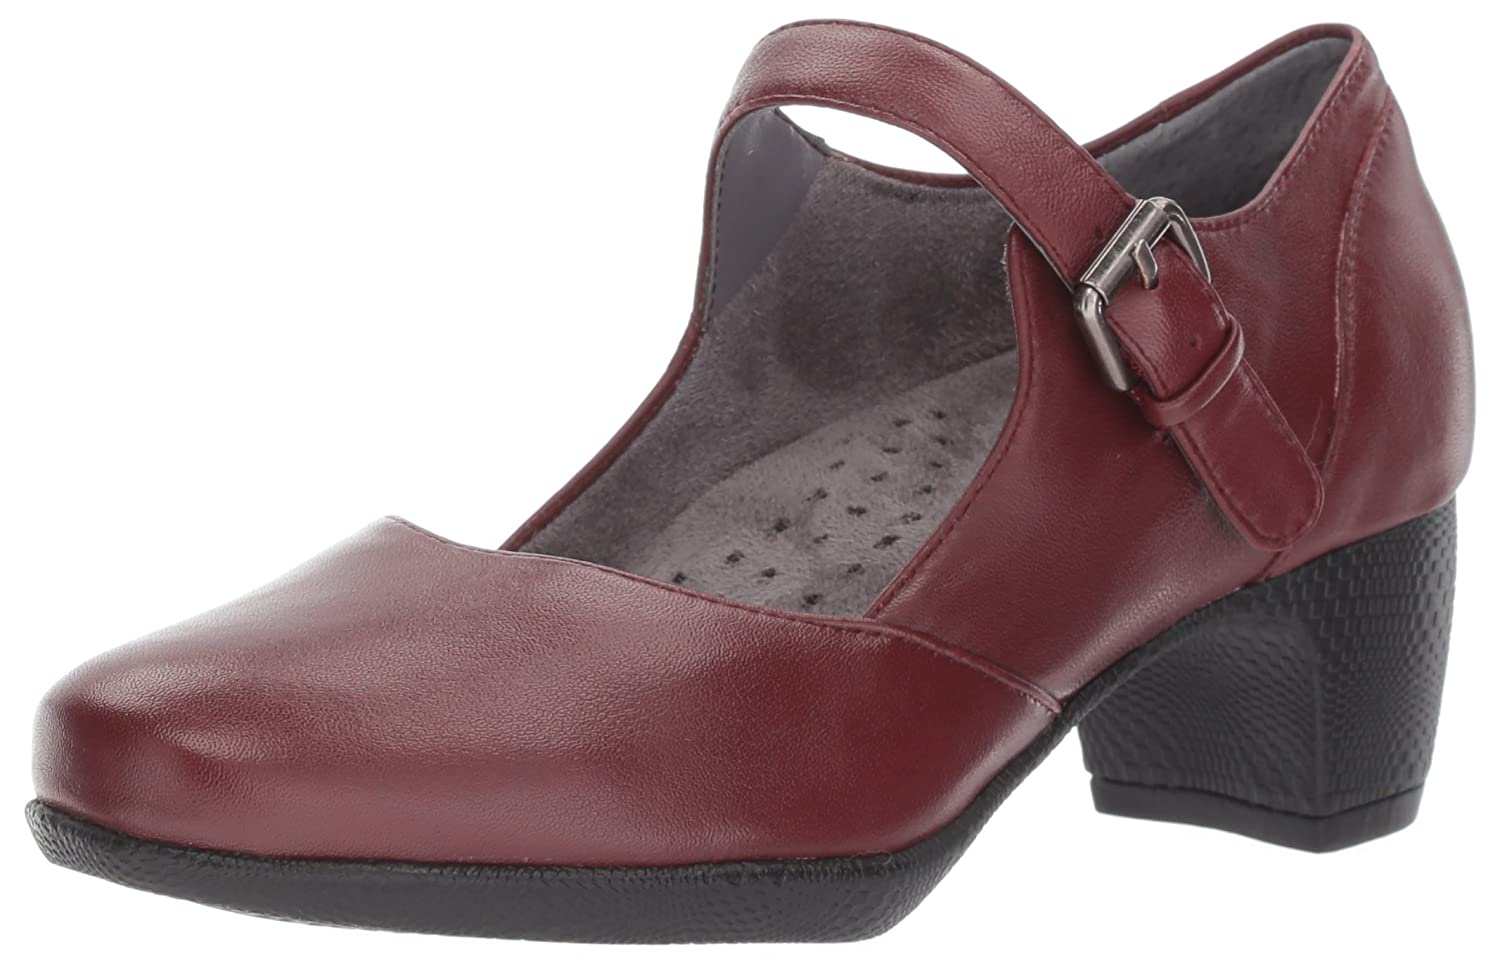 SoftWalk Pump Women's Irish Ii Dress Pump SoftWalk B01N0T94U1 8.5 W US|Dark Red 301908